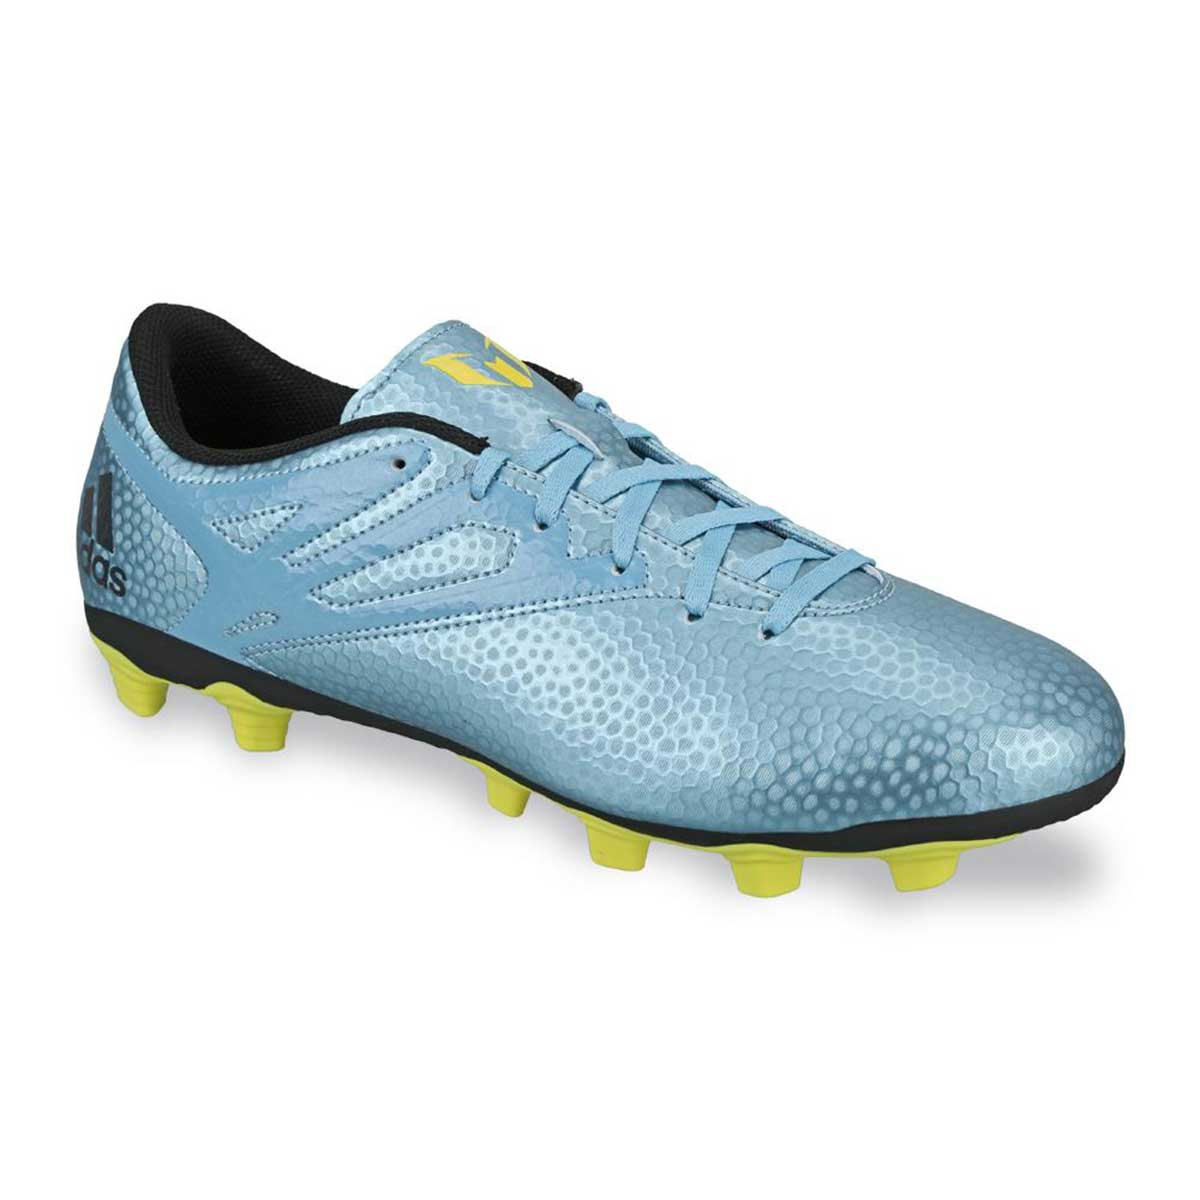 b44edc33c95 Buy Adidas Messi 15.4 FXG Football Shoes Online in India